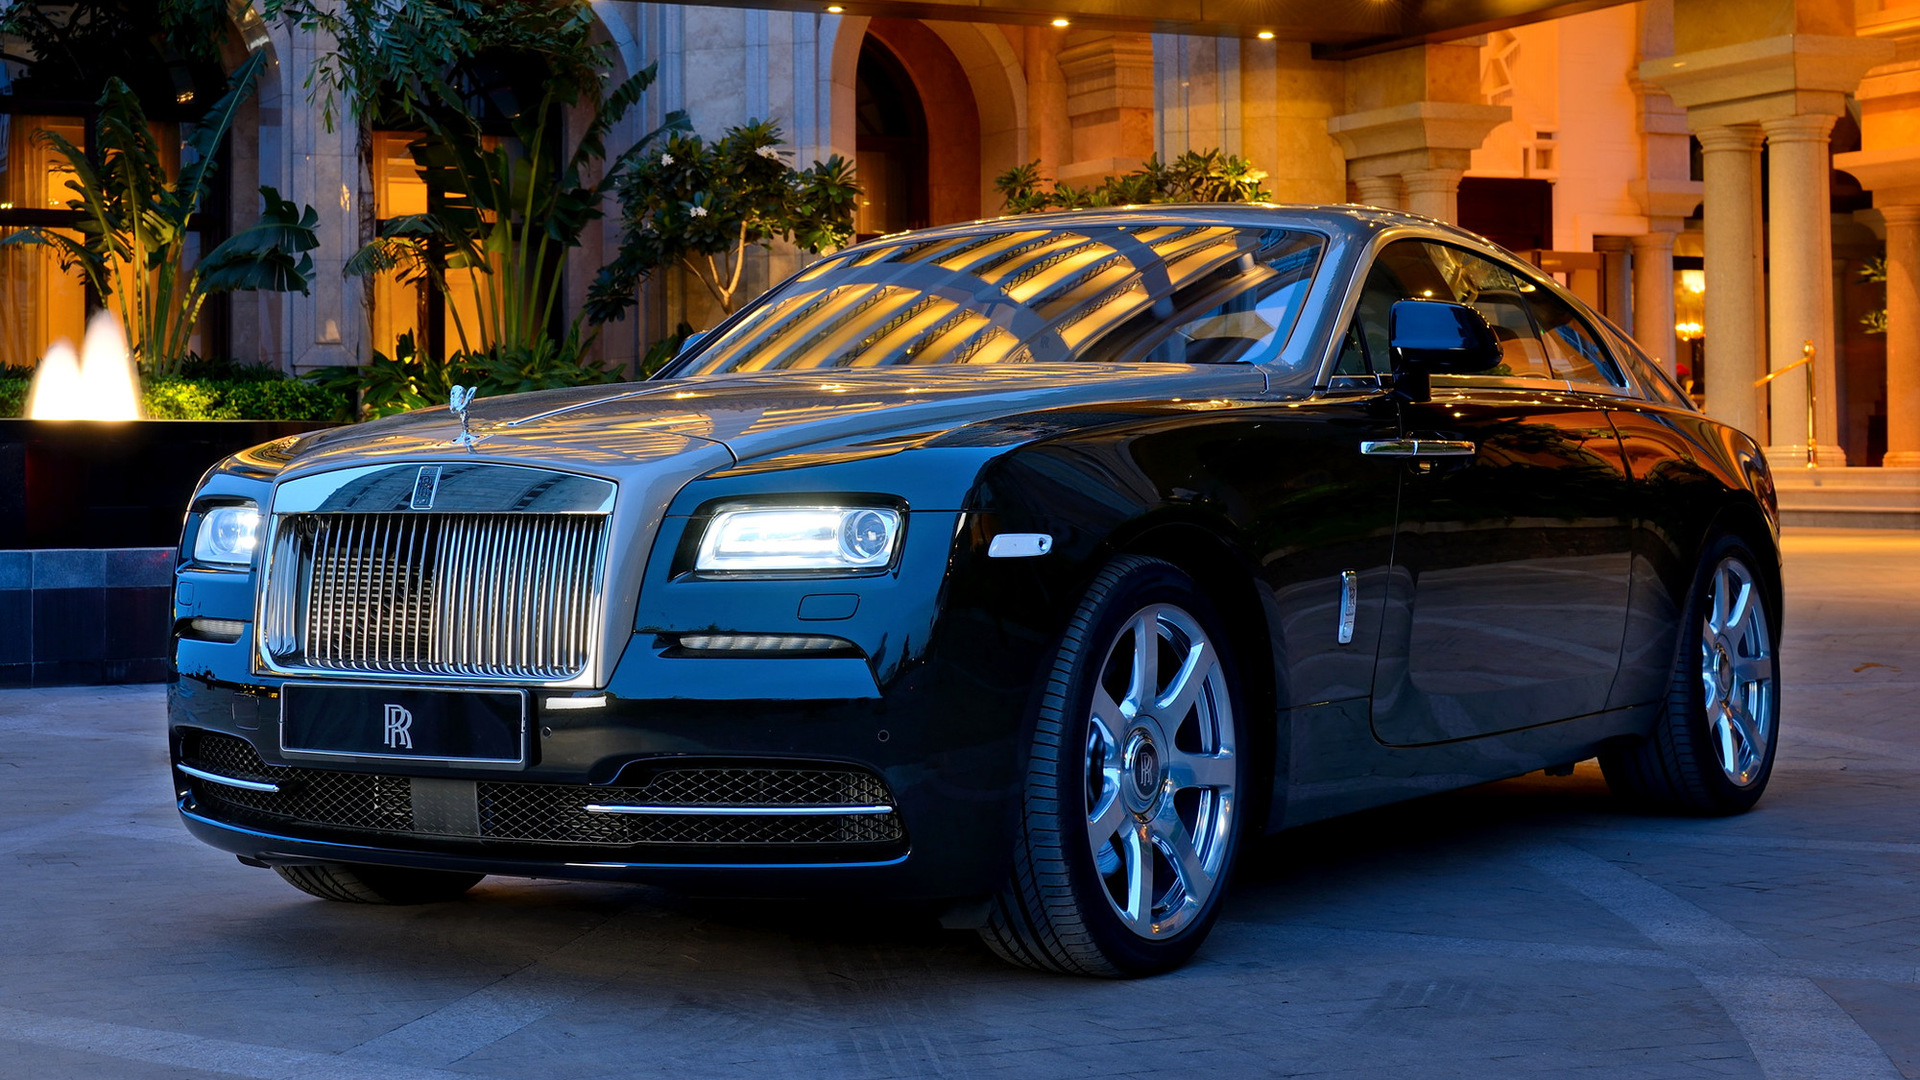 Smart Girl Hd Wallpaper Rolls Royce Wraith 2013 Wallpapers And Hd Images Car Pixel